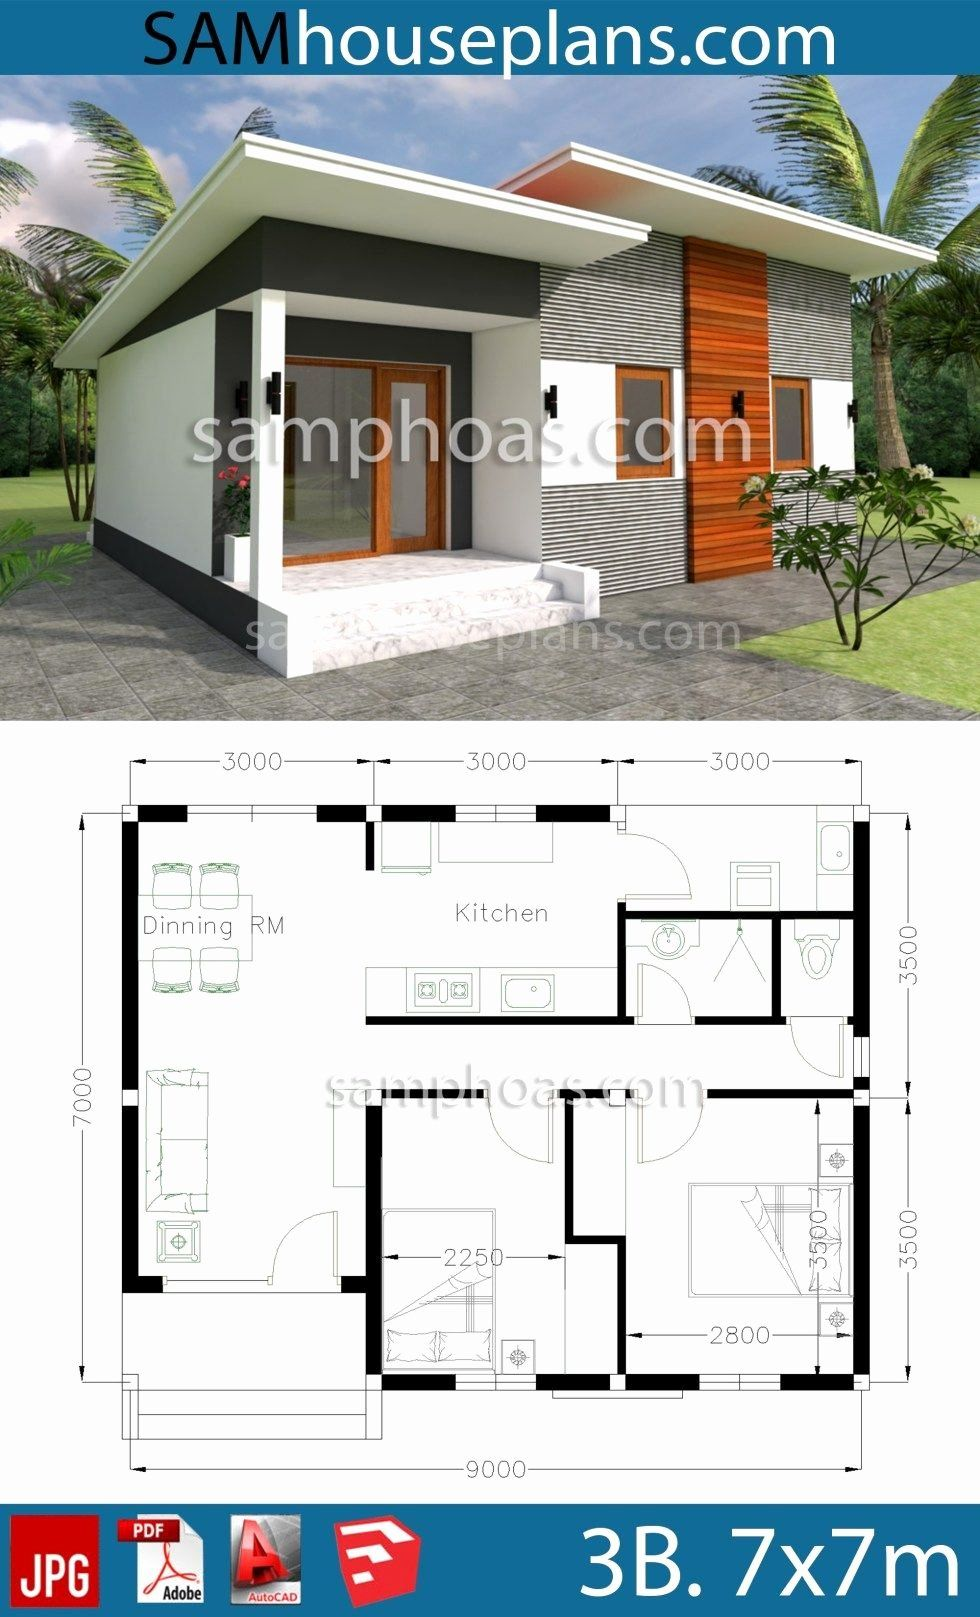 Two Bedroom Bungalow House Plans Awesome House Plans 9x7m With 2 Bedrooms In 2020 House Design Pictures Craftsman House Plans Modern Style House Plans